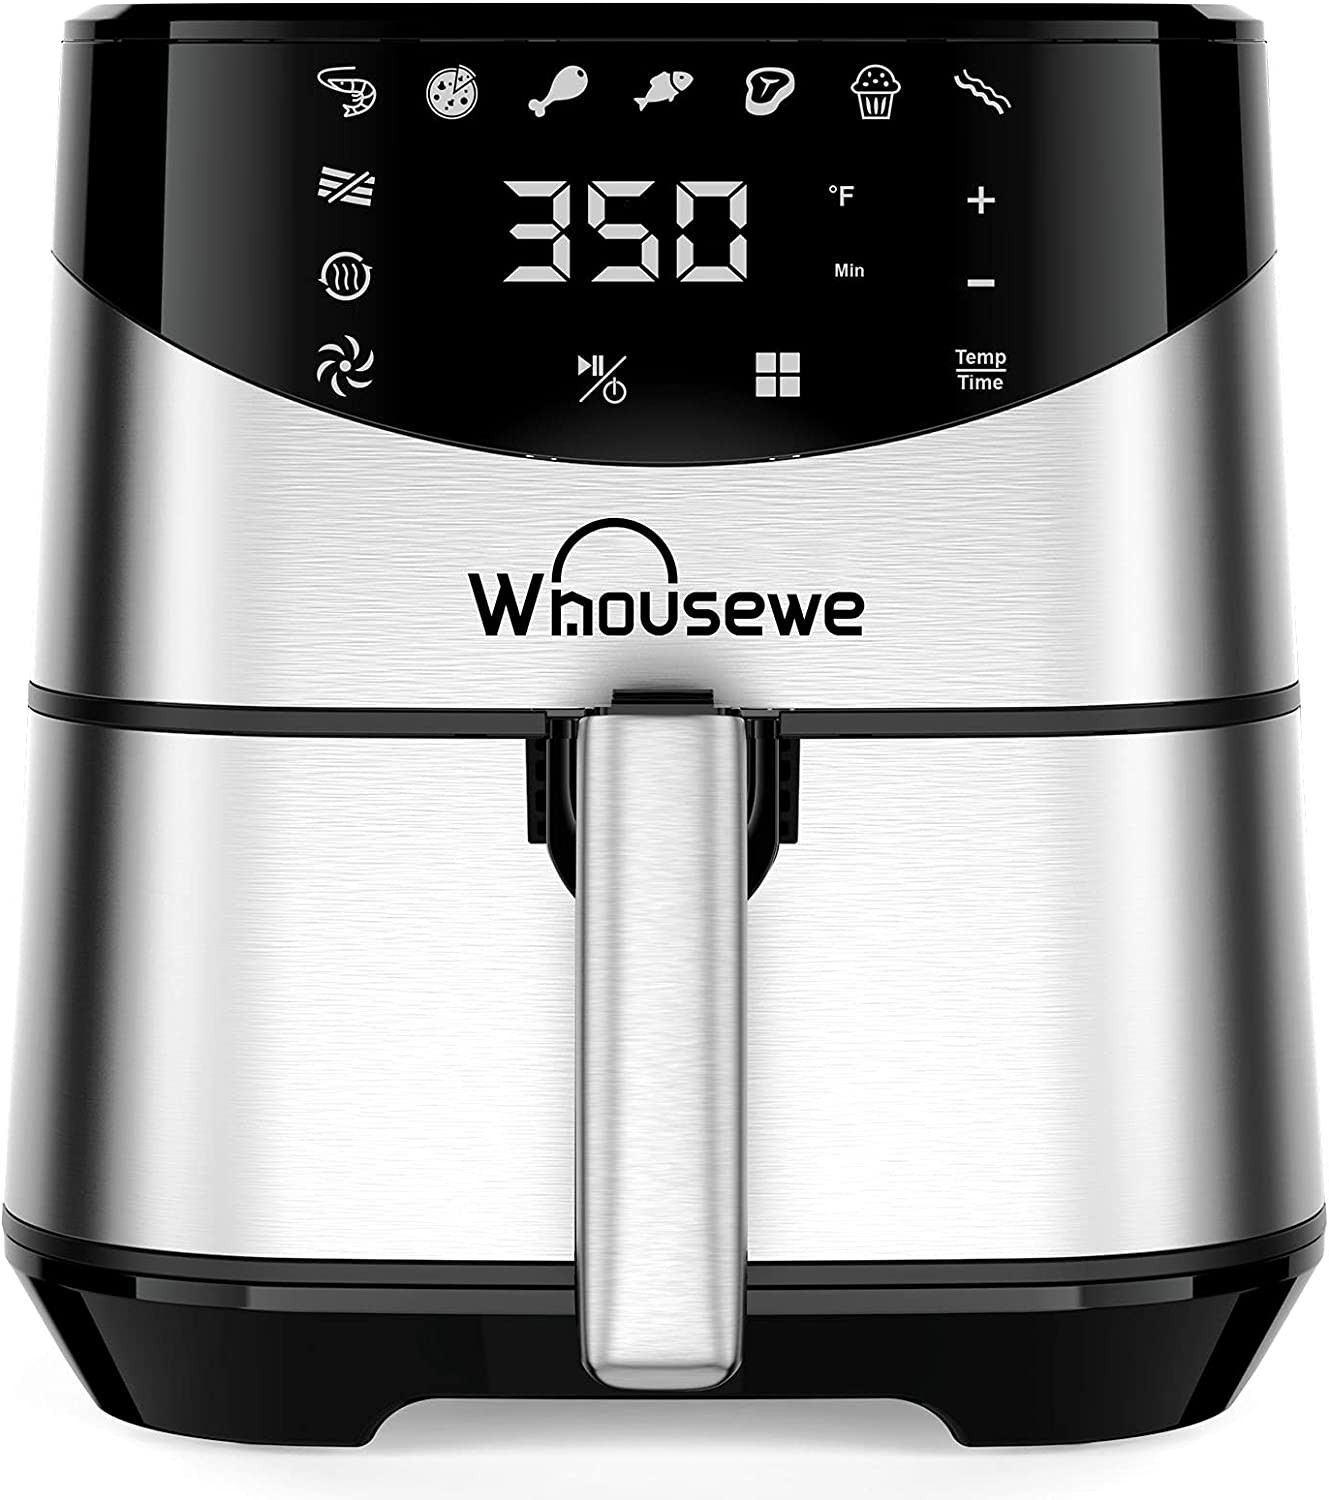 Whousewe Air Fryer, Large XL 5.8 QT Electric Hot Oven Oilless Cooker LED Touch Screen with 8 Preset Menus and 32 Recipes for Roast, Dehydrate & Bake, Auto Shutoff, Black